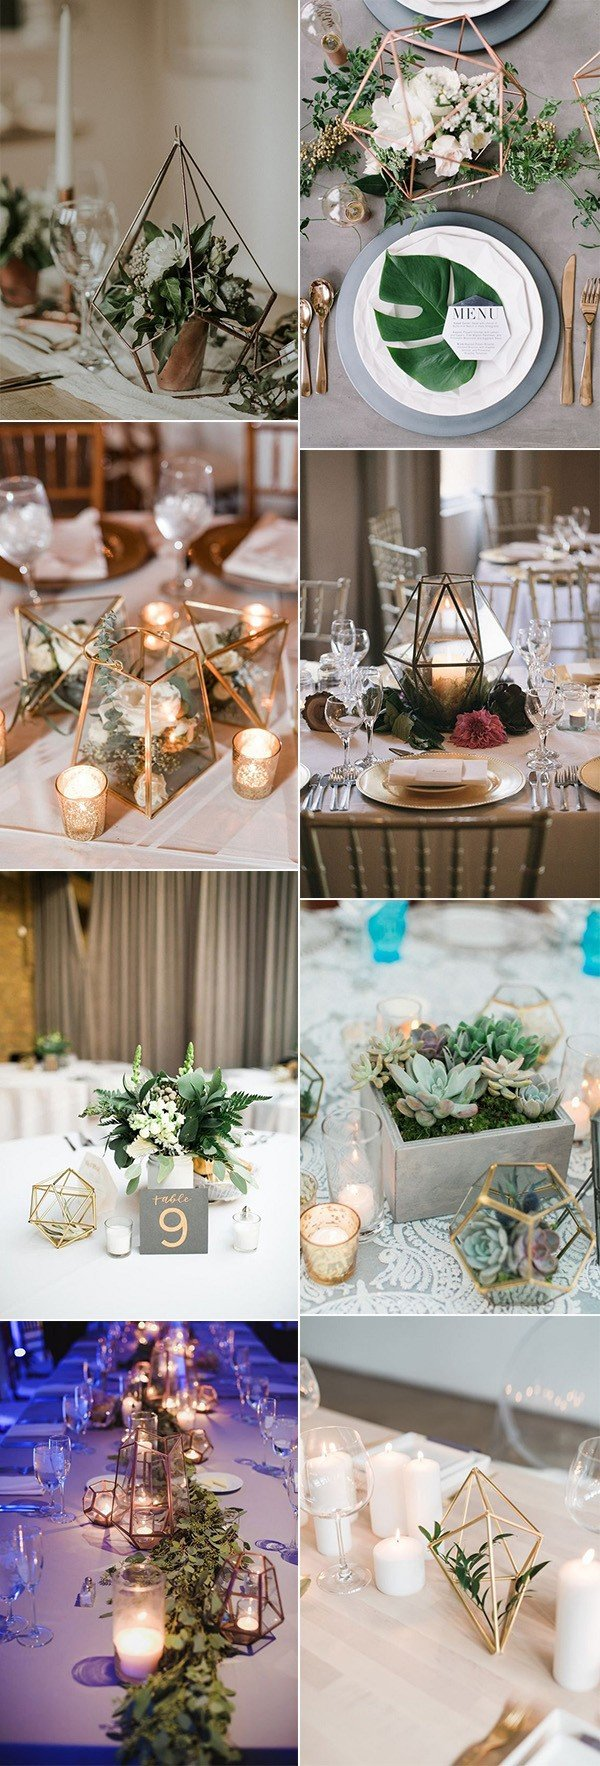 chic geometric wedding centerpiece ideas for 2018 trends